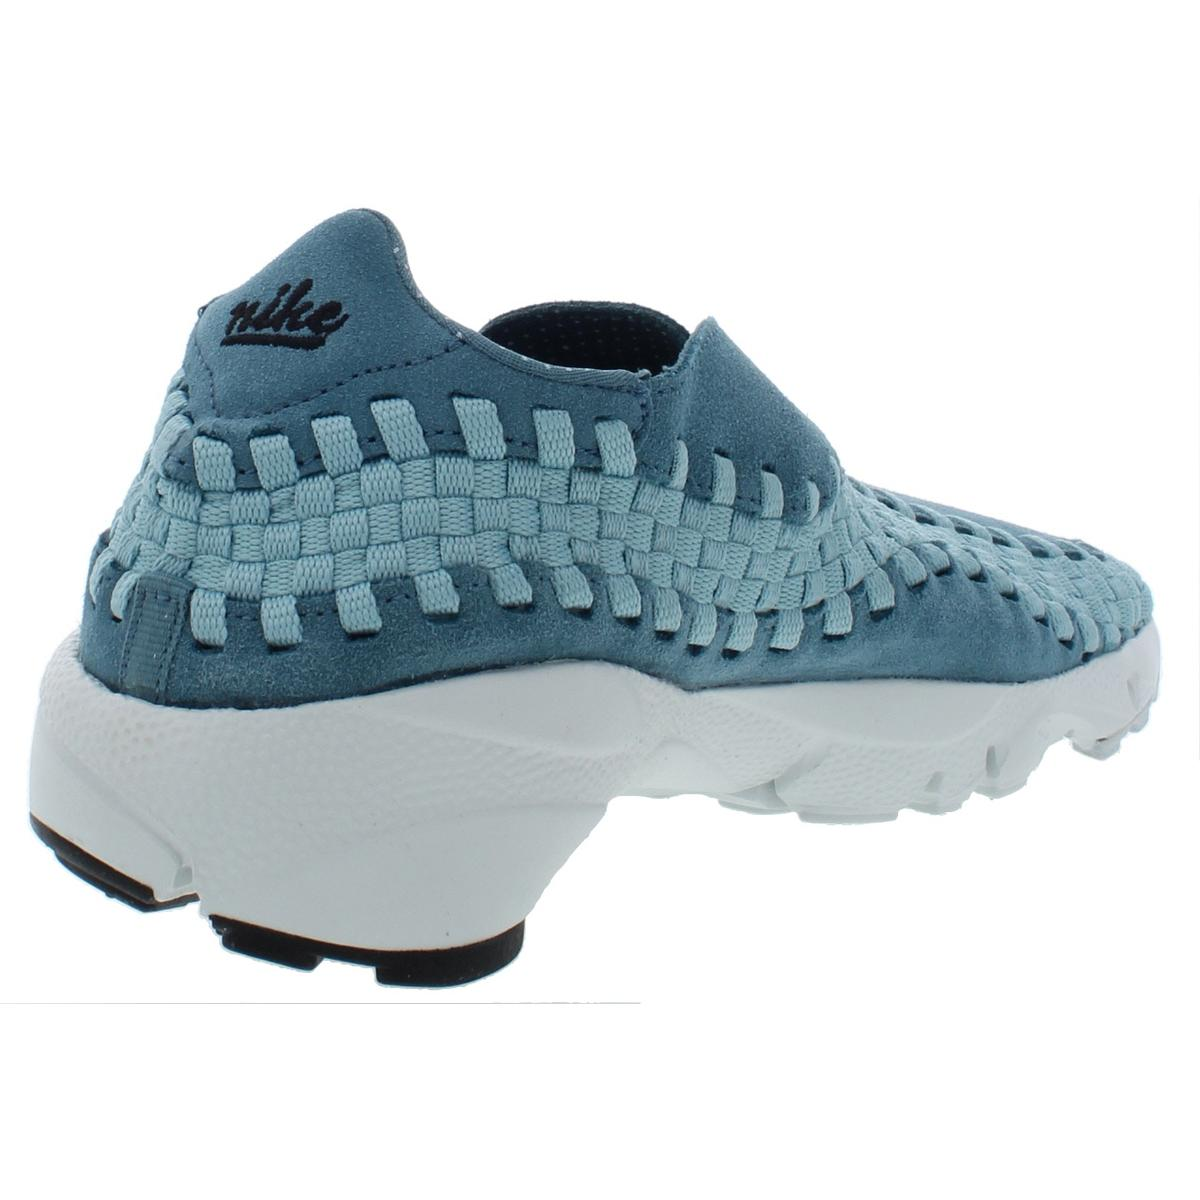 Nike-Mens-Air-Footscape-Woven-Low-Top-Lifestyle-Fashion-Sneakers-Shoes-BHFO-3976 thumbnail 8